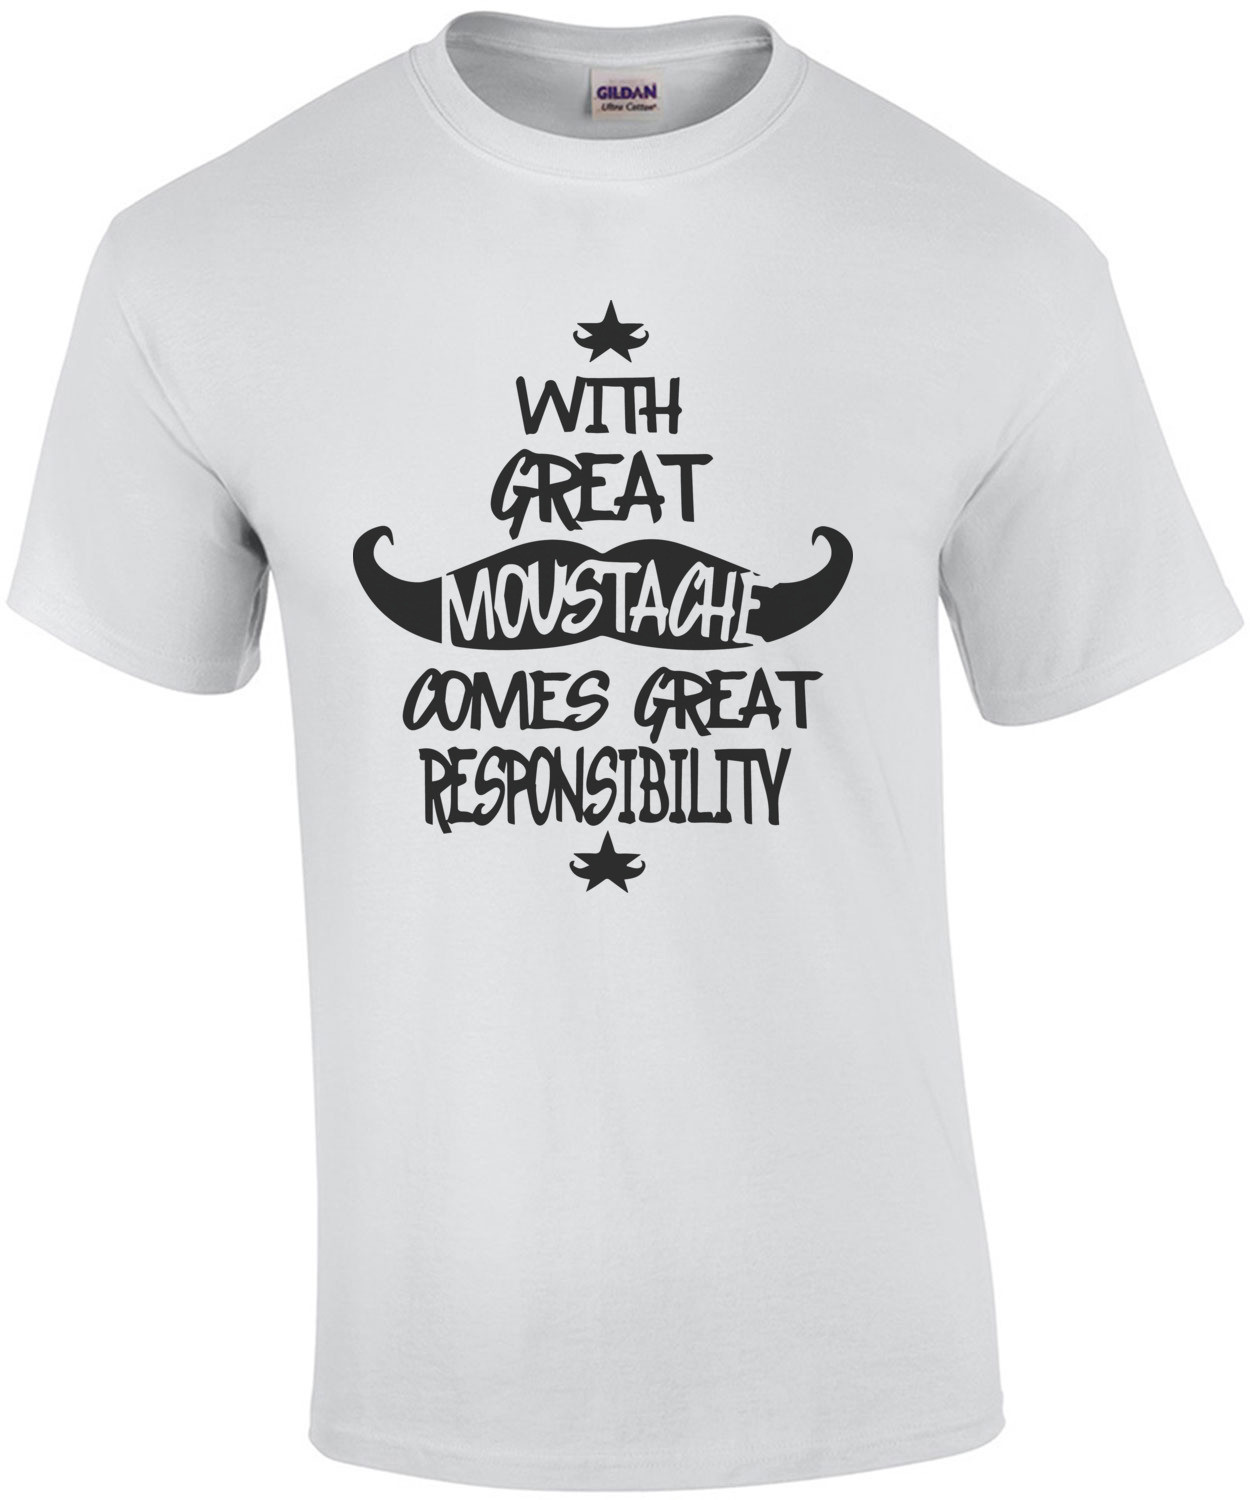 With Great Mustache Comes Great Responsibility - Funny T-Shirt